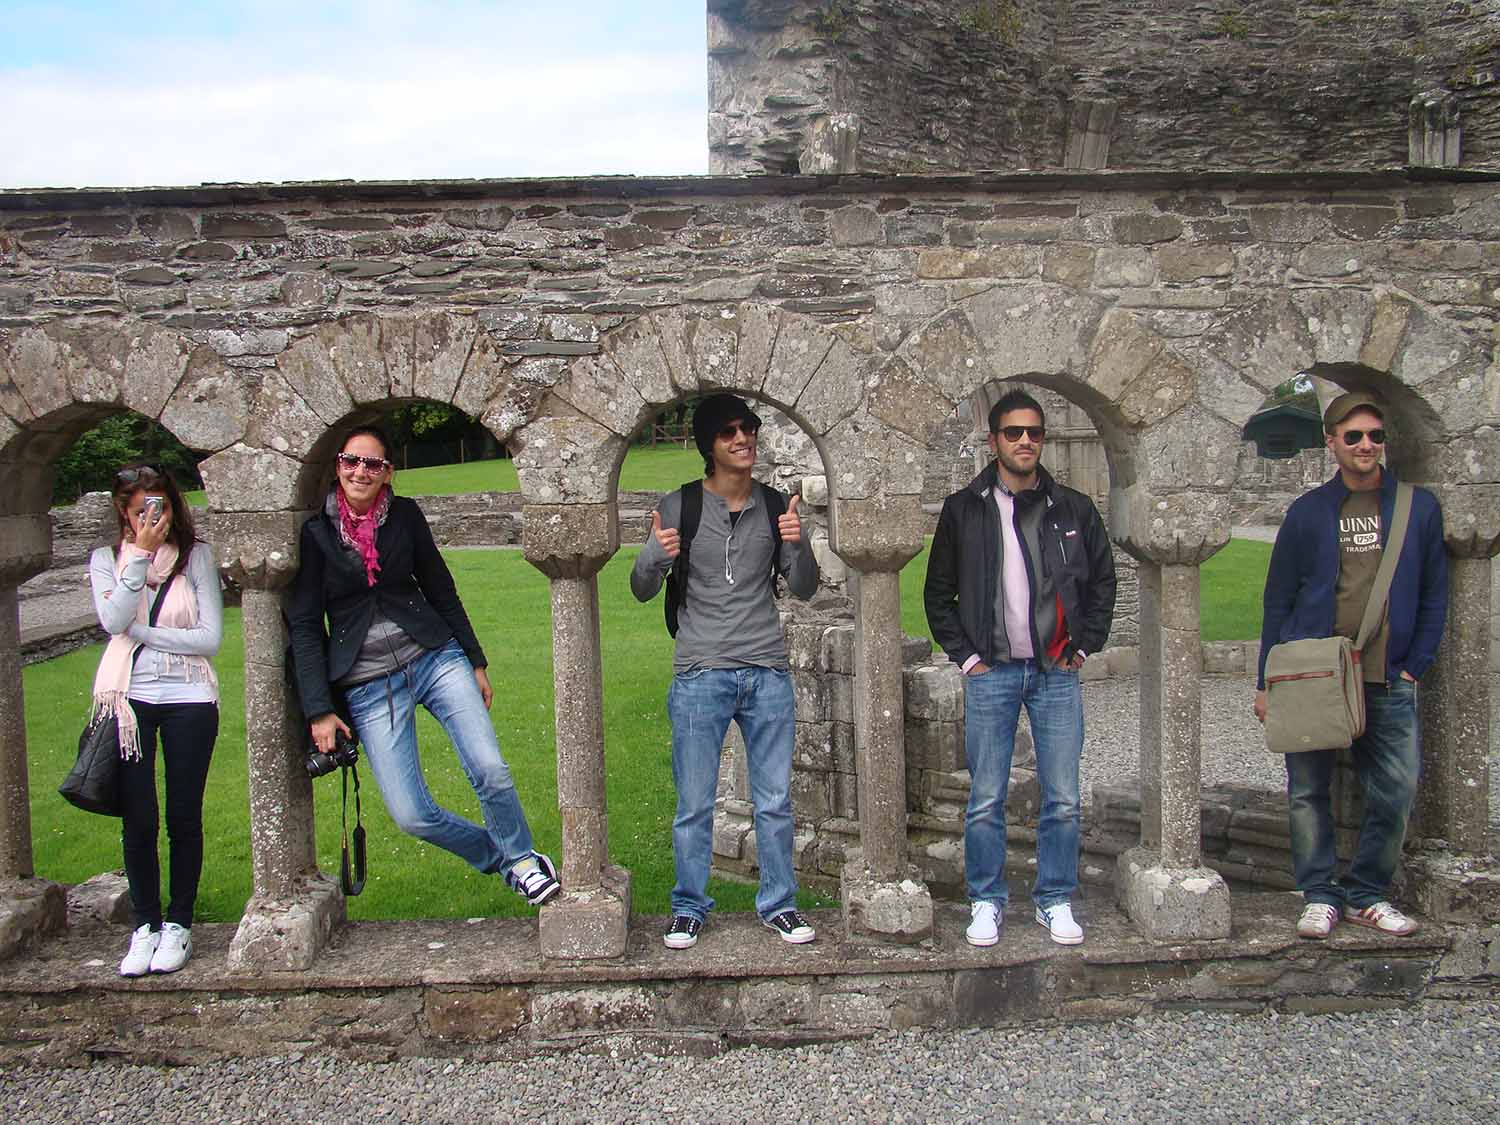 Dublin_Location_Leisure_Students_02